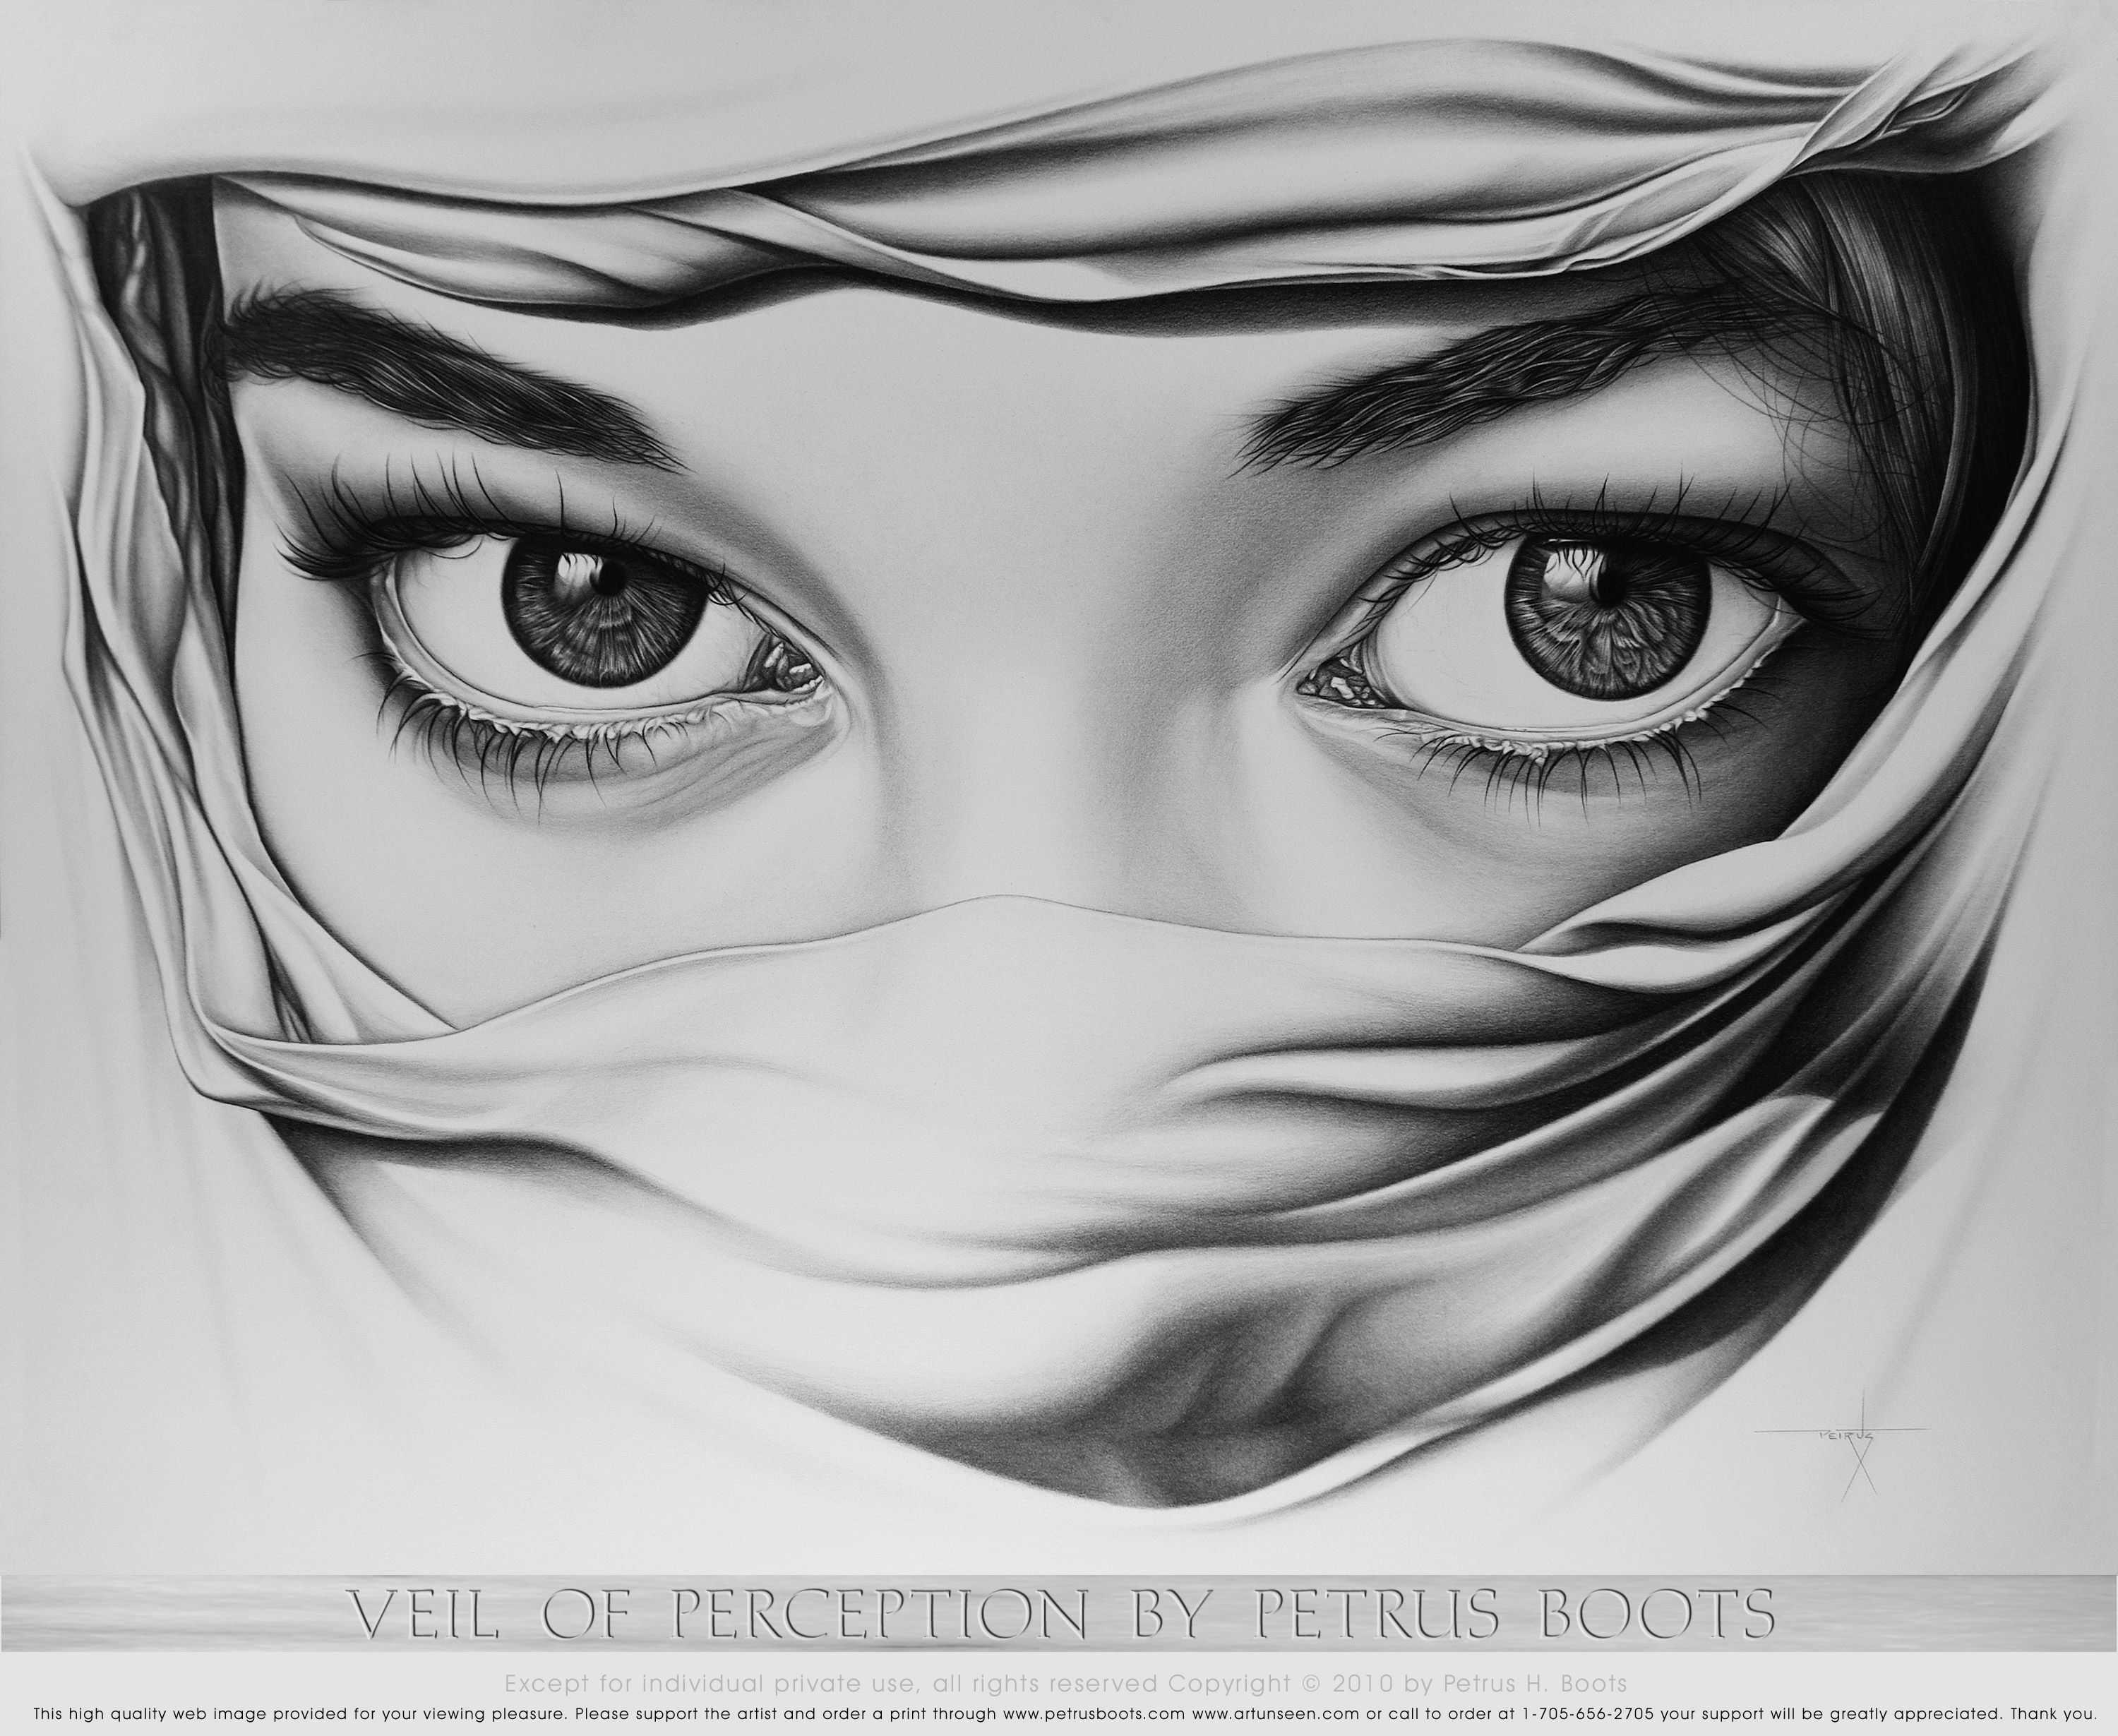 The art of petrus boots veil of perception graphite pencil drawing